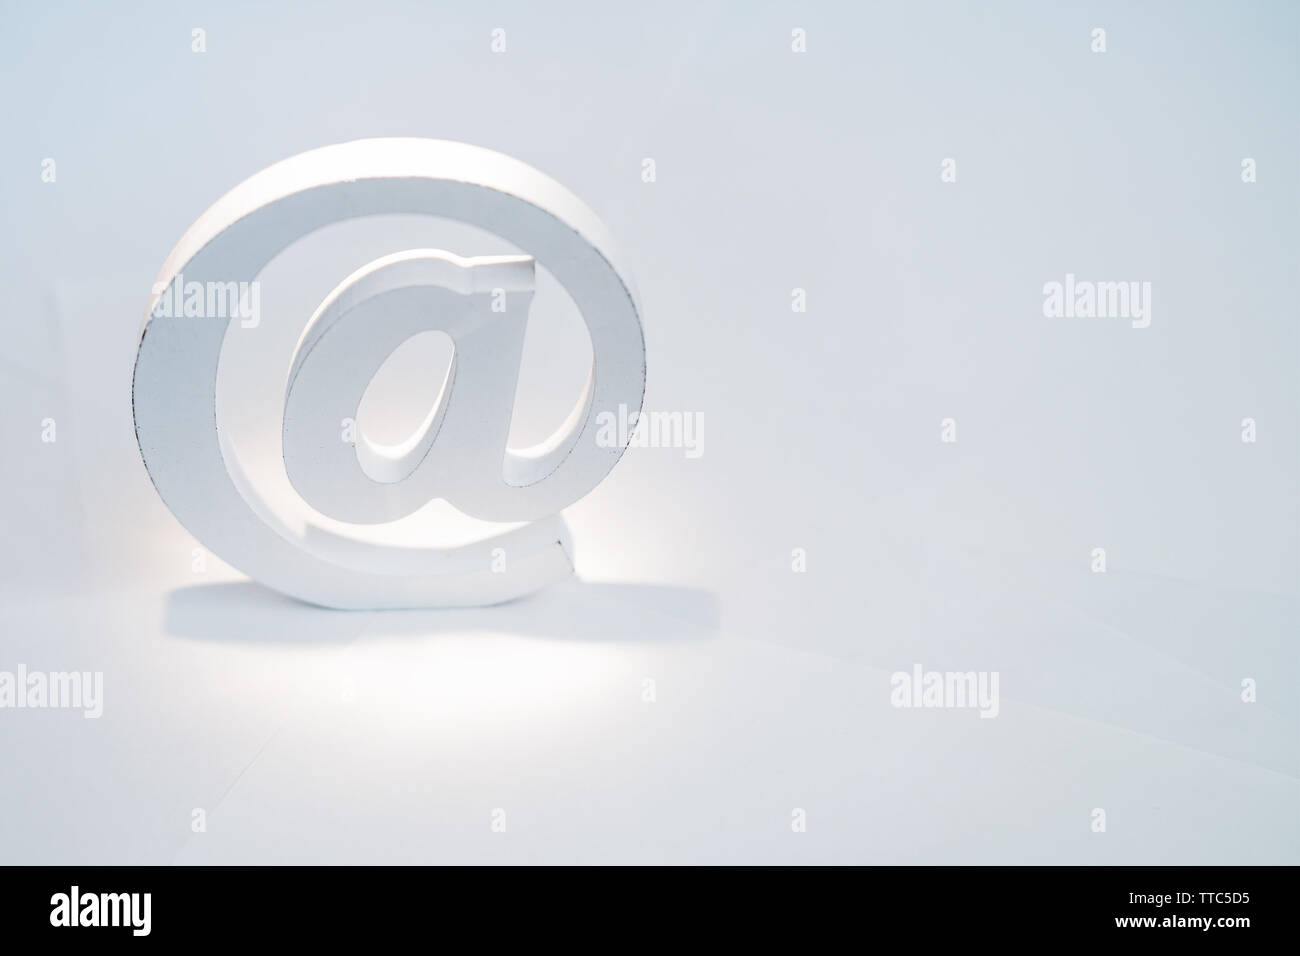 Email sign on white background with real shadow. Concept for email, communication or contact us - Stock Image